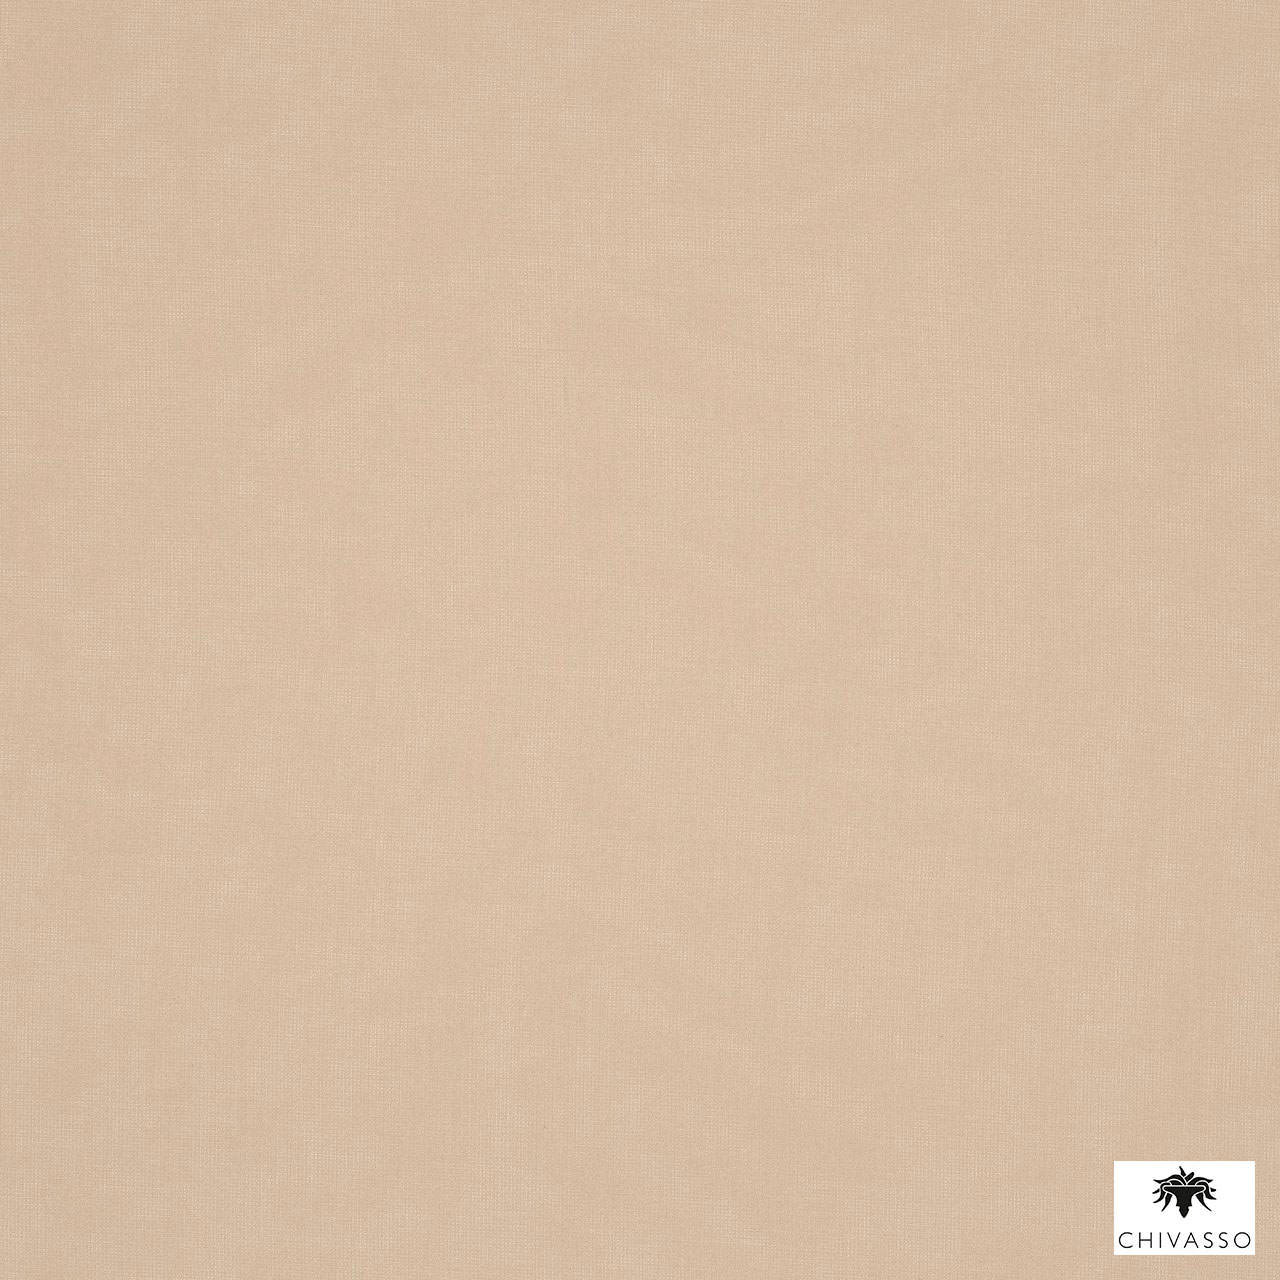 Chivasso - Lush - Ch2818 - 073  | Curtain Fabric - Beige, Plain, Synthetic, Domestic Use, Wide Width